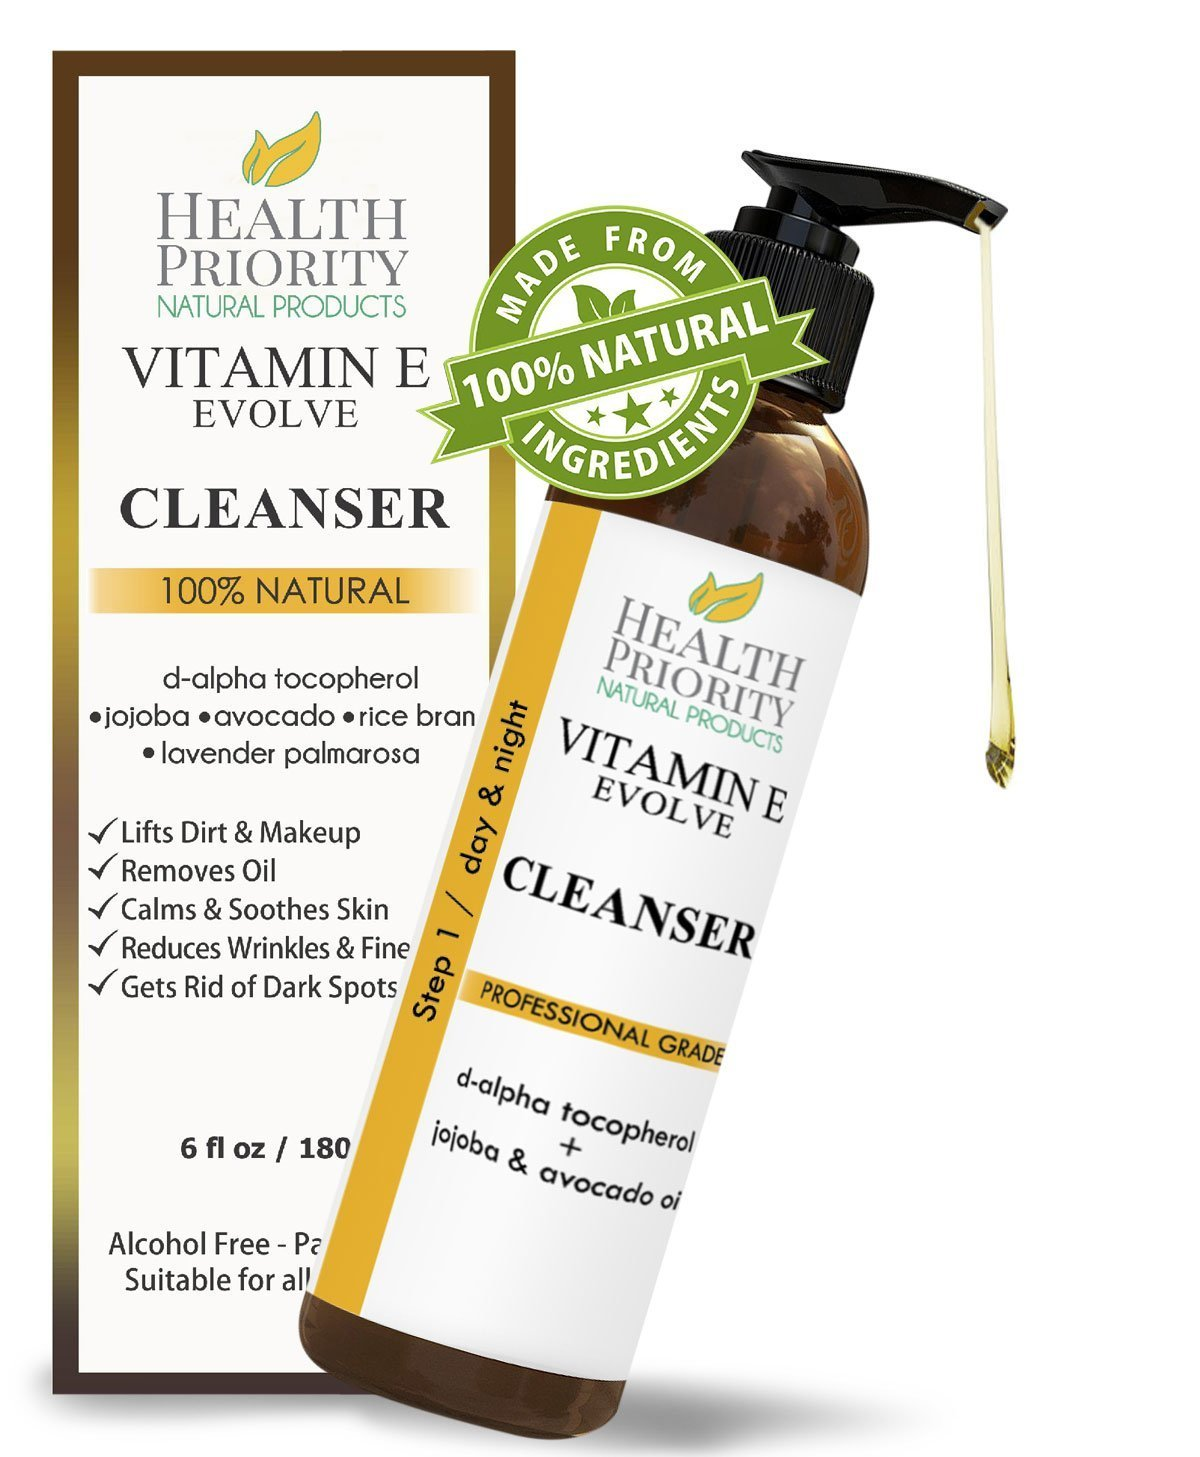 100% Natural Vitamin E Facial Cleanser. Best ever face wash for dry to oily skin. Anti-acne & anti-blemish clearing cleansers better than soap. Hypoallergenic face cleaner perfect for sensitive skin. (2 oz)